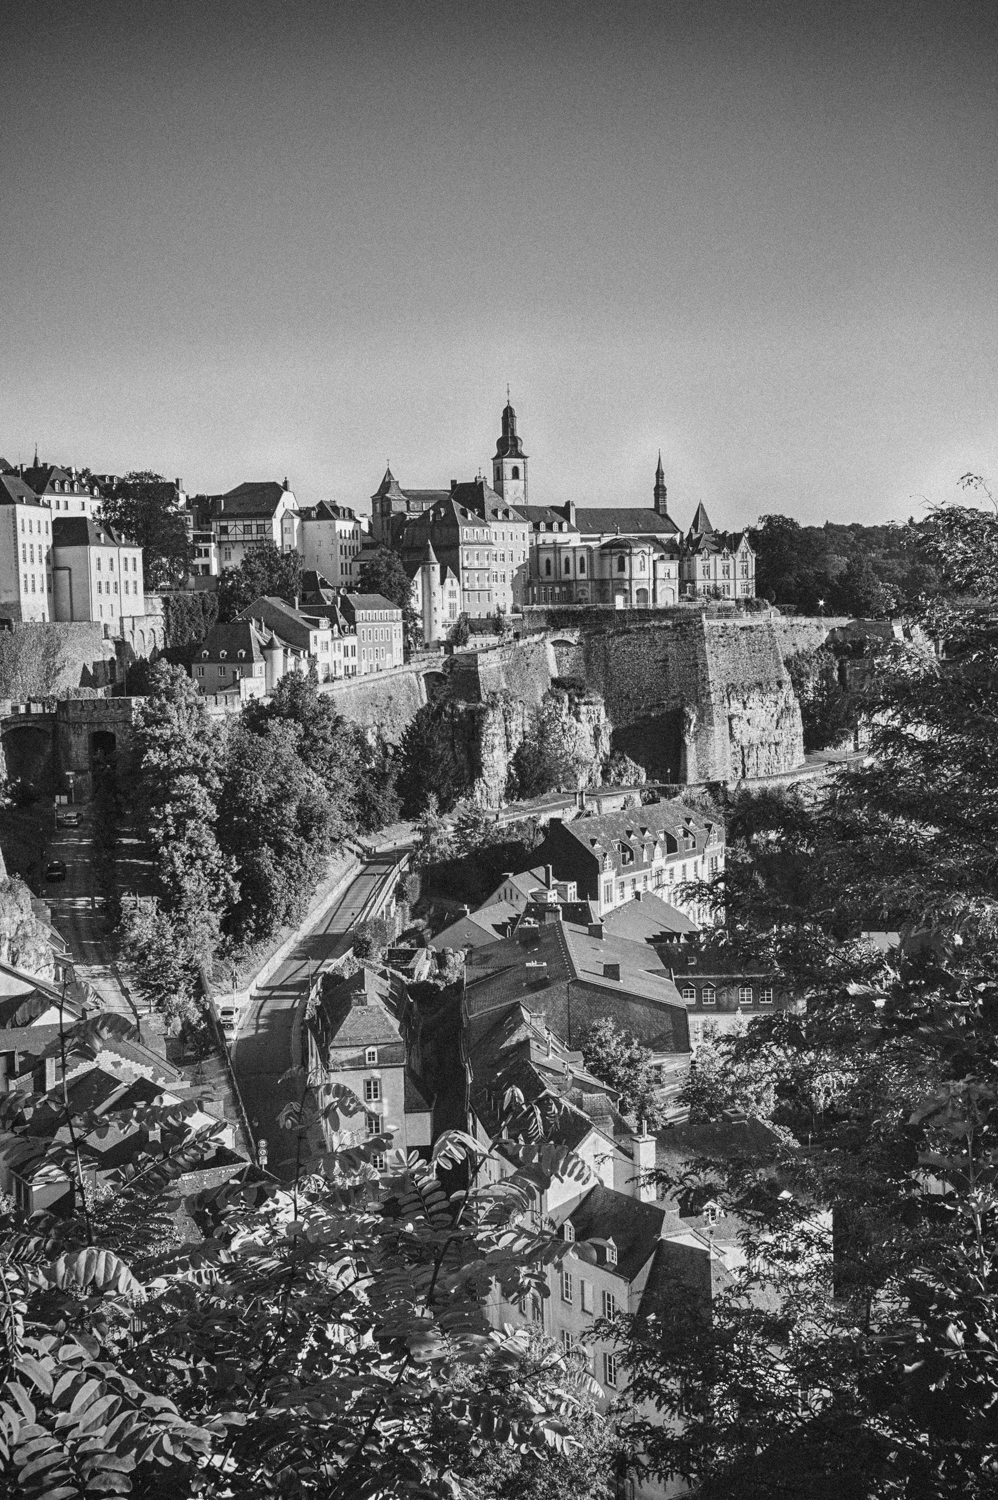 4. Luxembourg City Shot with the Canon EOS 60D and EF-S 17-85mm lens